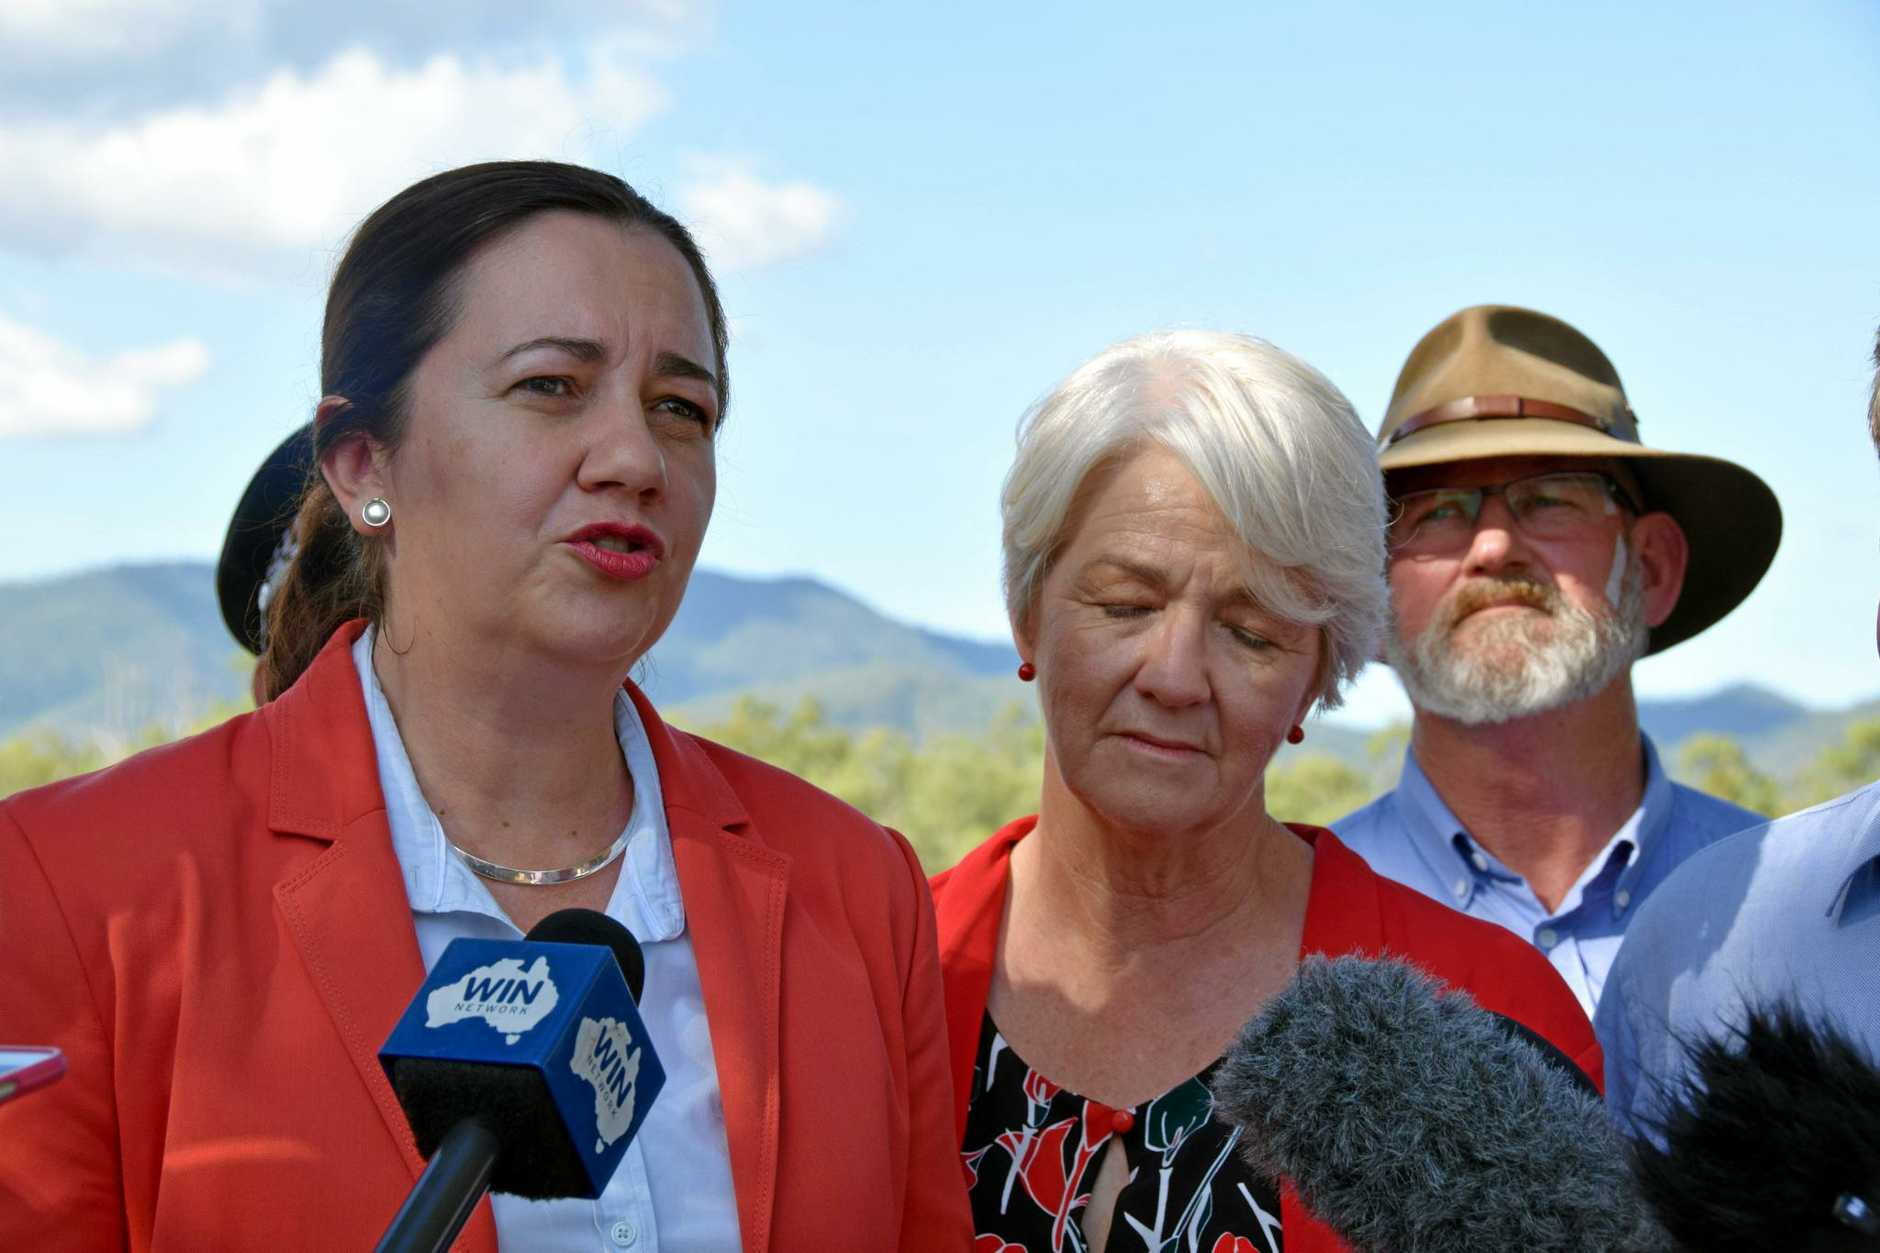 Queensland Premier Annastacia Palaszczuk addresses the media in Rockhampton on Saturday afternoon, alongside Rockhampton mayor Margaret Strelow and Rockhampton MP Bill Byrne.Photo Amber Hooker / The Morning Bulletin